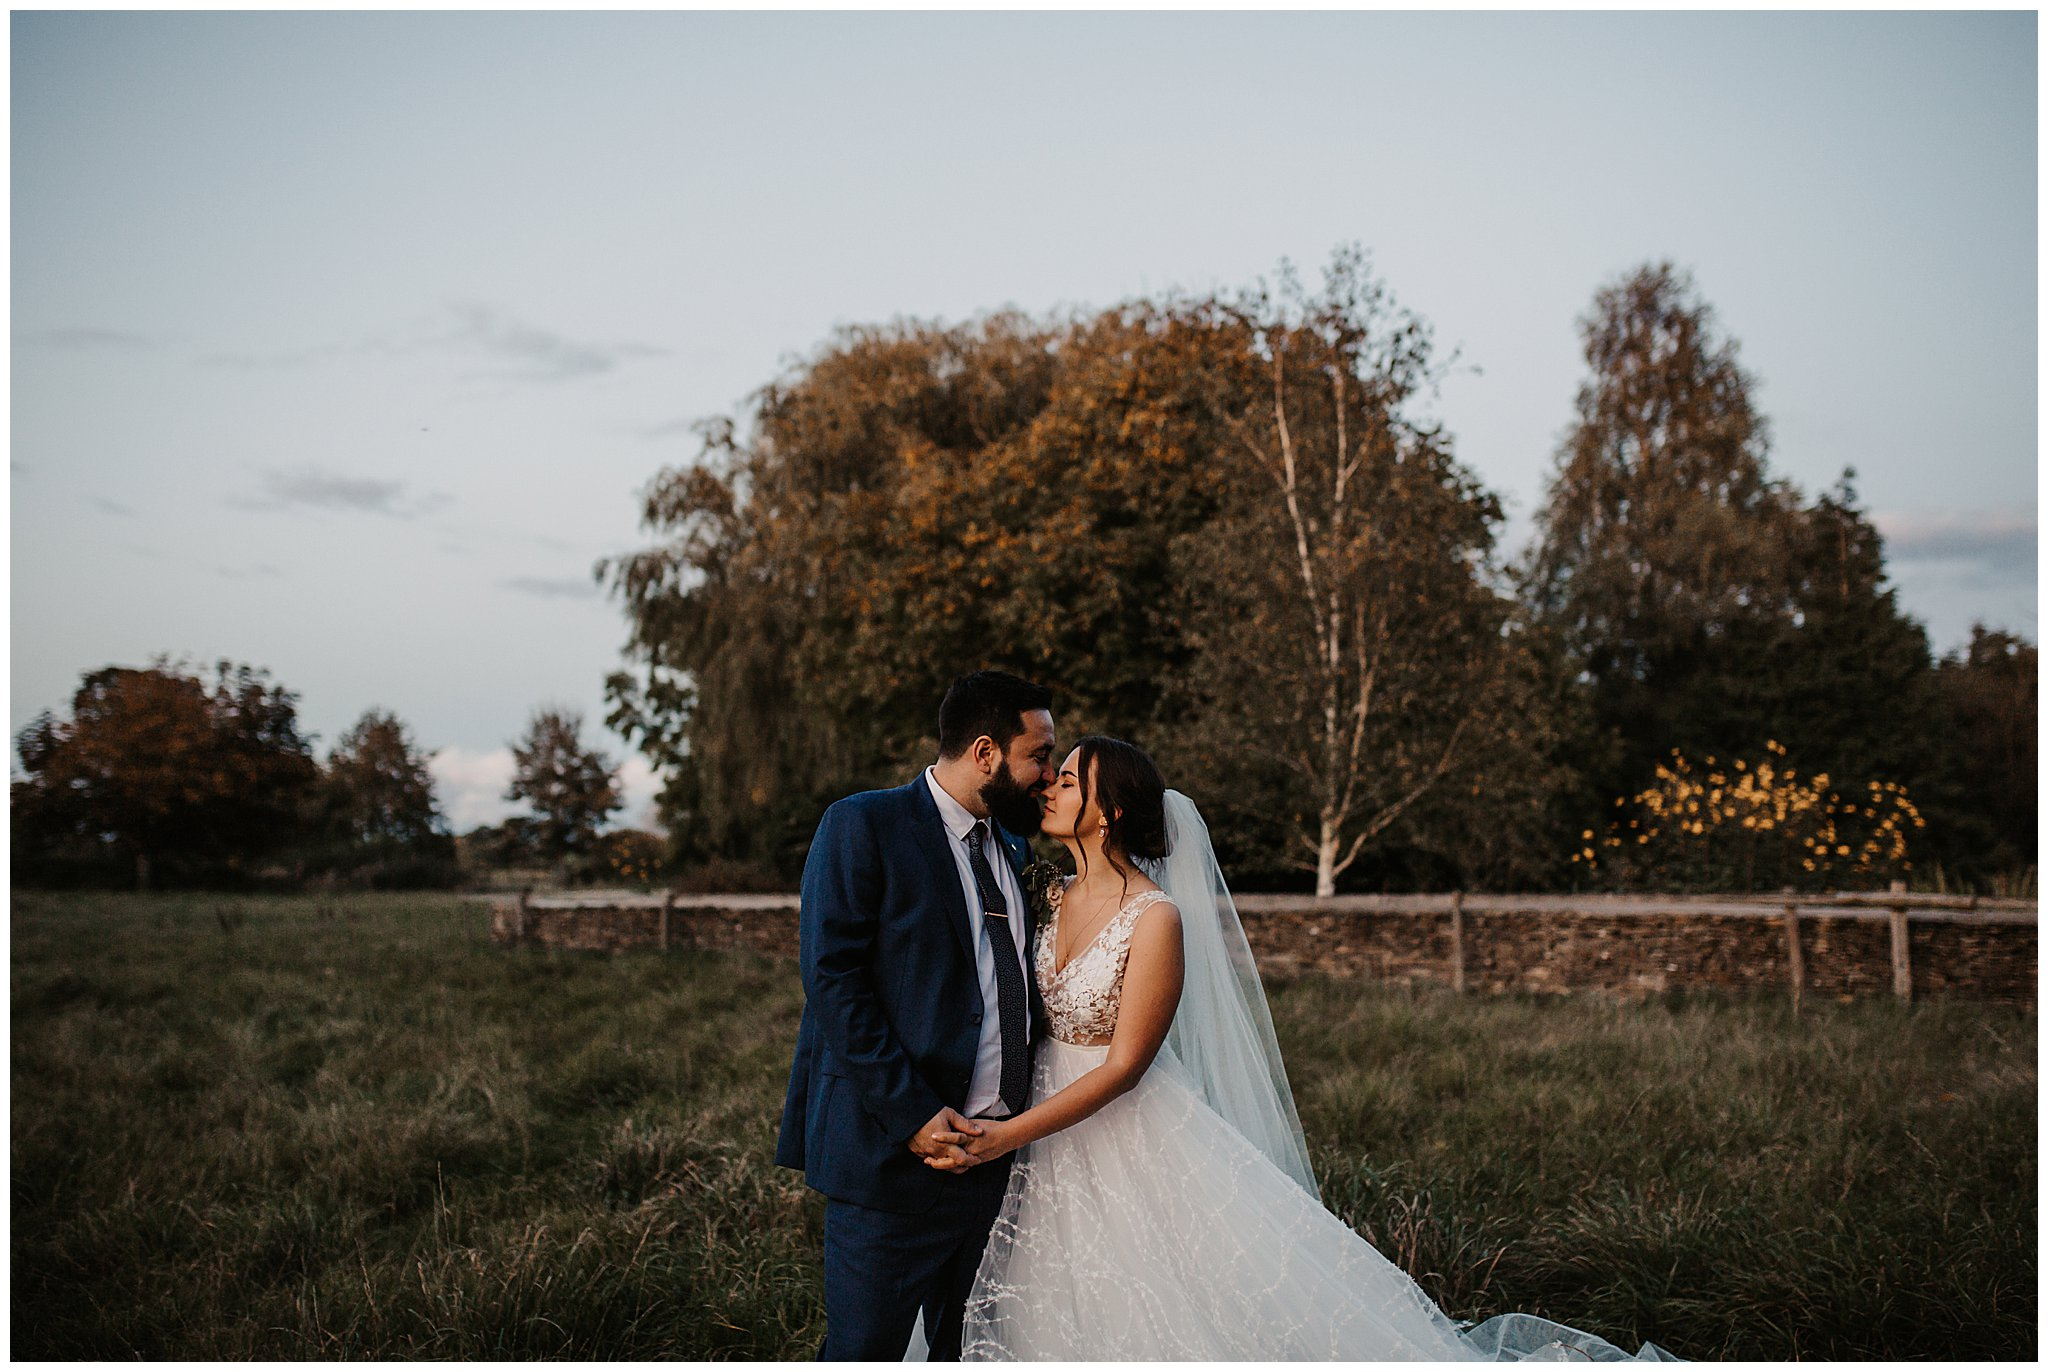 Max & Ksenia Autumnal Wiltshire Wedding-826.jpg